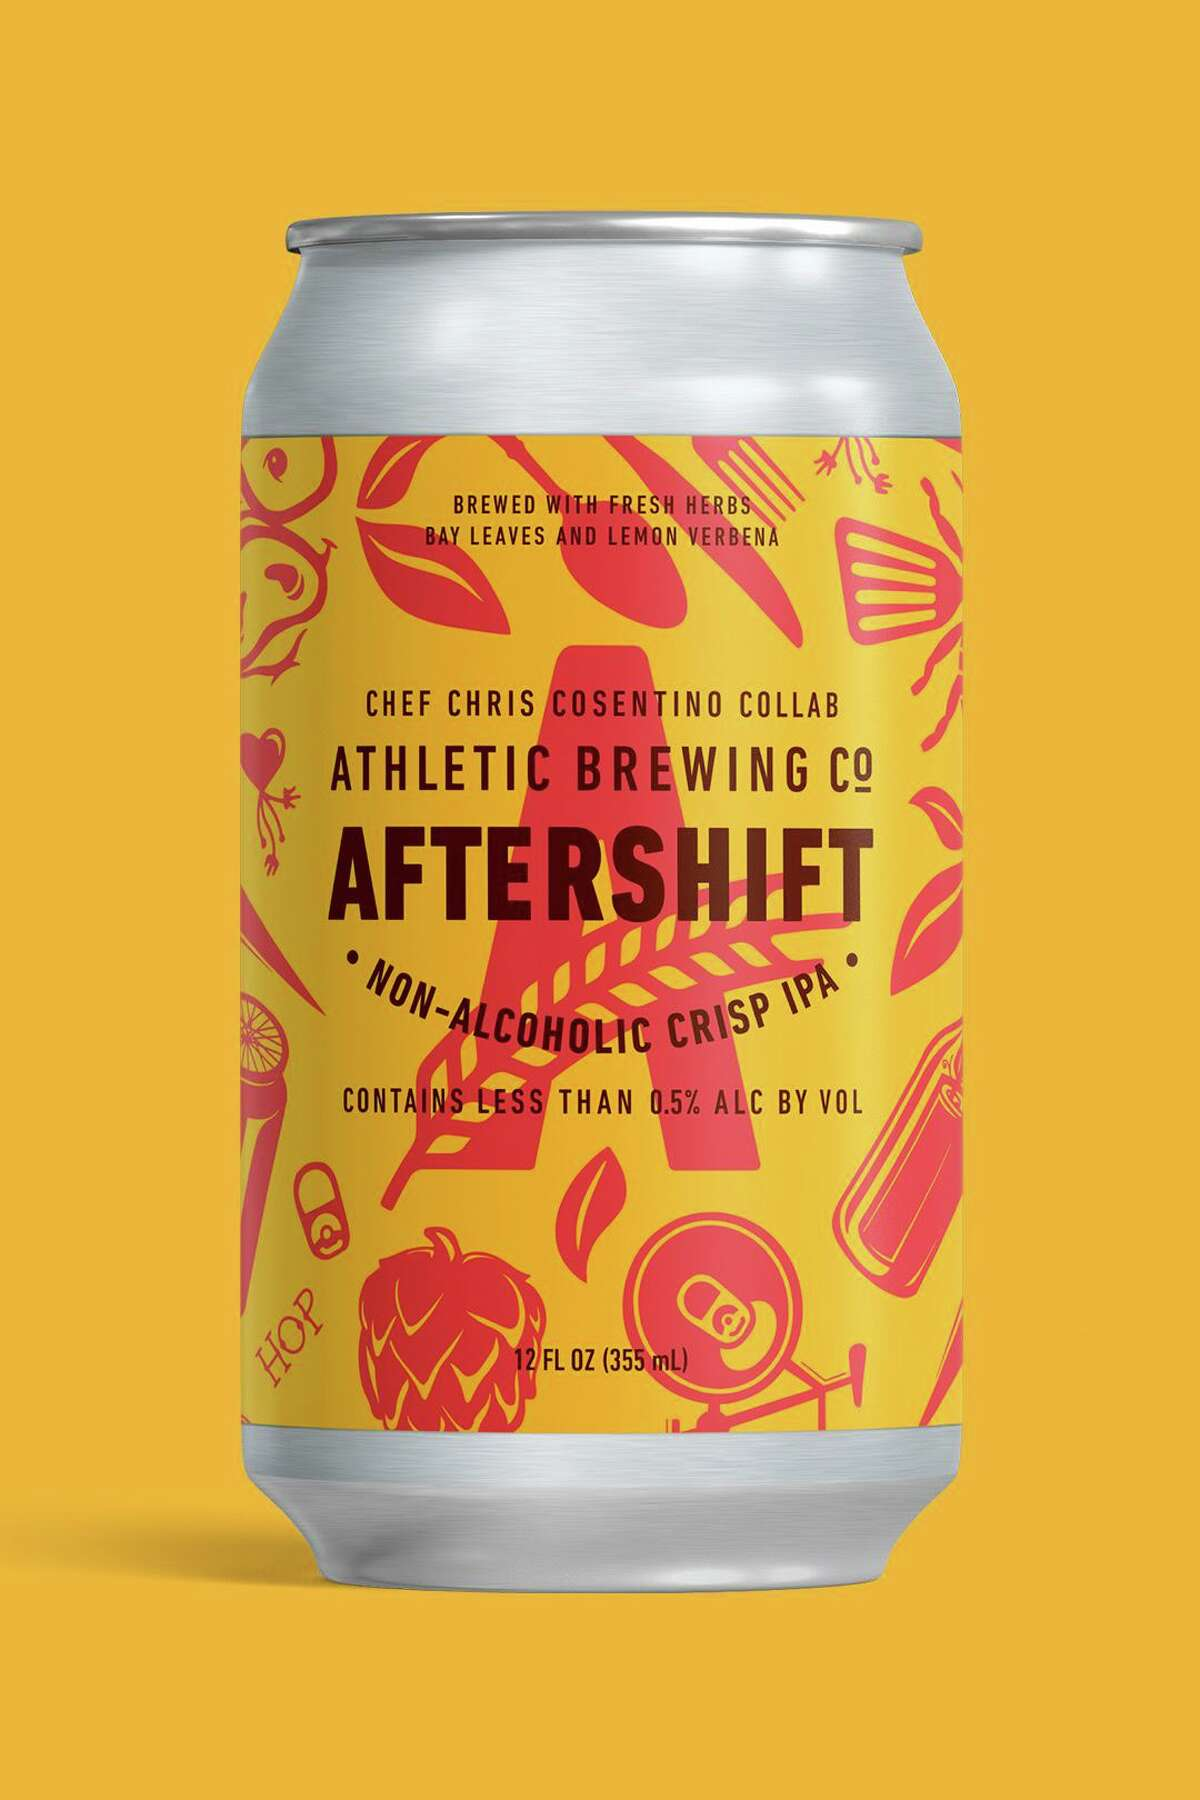 """Chef Chris Cosentino collaborated with Athletic Brewing Company to launch their new nonalcoholic IPA, AfterShift. The non-alcoholic beer industry has grown in recent years, with the """"sober-curious"""" trend gaining traction, as individuals seek out more health-conscious beverages or seek to avoid hangovers. Athletic Brewing expanded to add a second location in San Diego, which allows them to brew an additional 125,000 barrels of their product. """"Everything about non-alcoholic beer is aligned with modern health trends - low calories, organic, refreshing, delicious and functional,"""" said Bill Shufelt, Athletic Brewing co-founder. """"You don't have to compromise and deal with a hangover, being tired, or less healthy options to enjoy great taste. People are loving having a healthy, mindful option to enjoy at any occasion."""" Cosentino said he loves the flavor of beer but finds a better balance during his after-shifts with non-alcoholic beer after a long day in the kitchen. """"It is amazing to give an option to people because nobody should feel ostracized because they don't drink,"""" Cosentino said. """"AfterShift offers the flavor that beer lovers recognize and want without regret."""" For more information, visit athleticbrewing.com."""